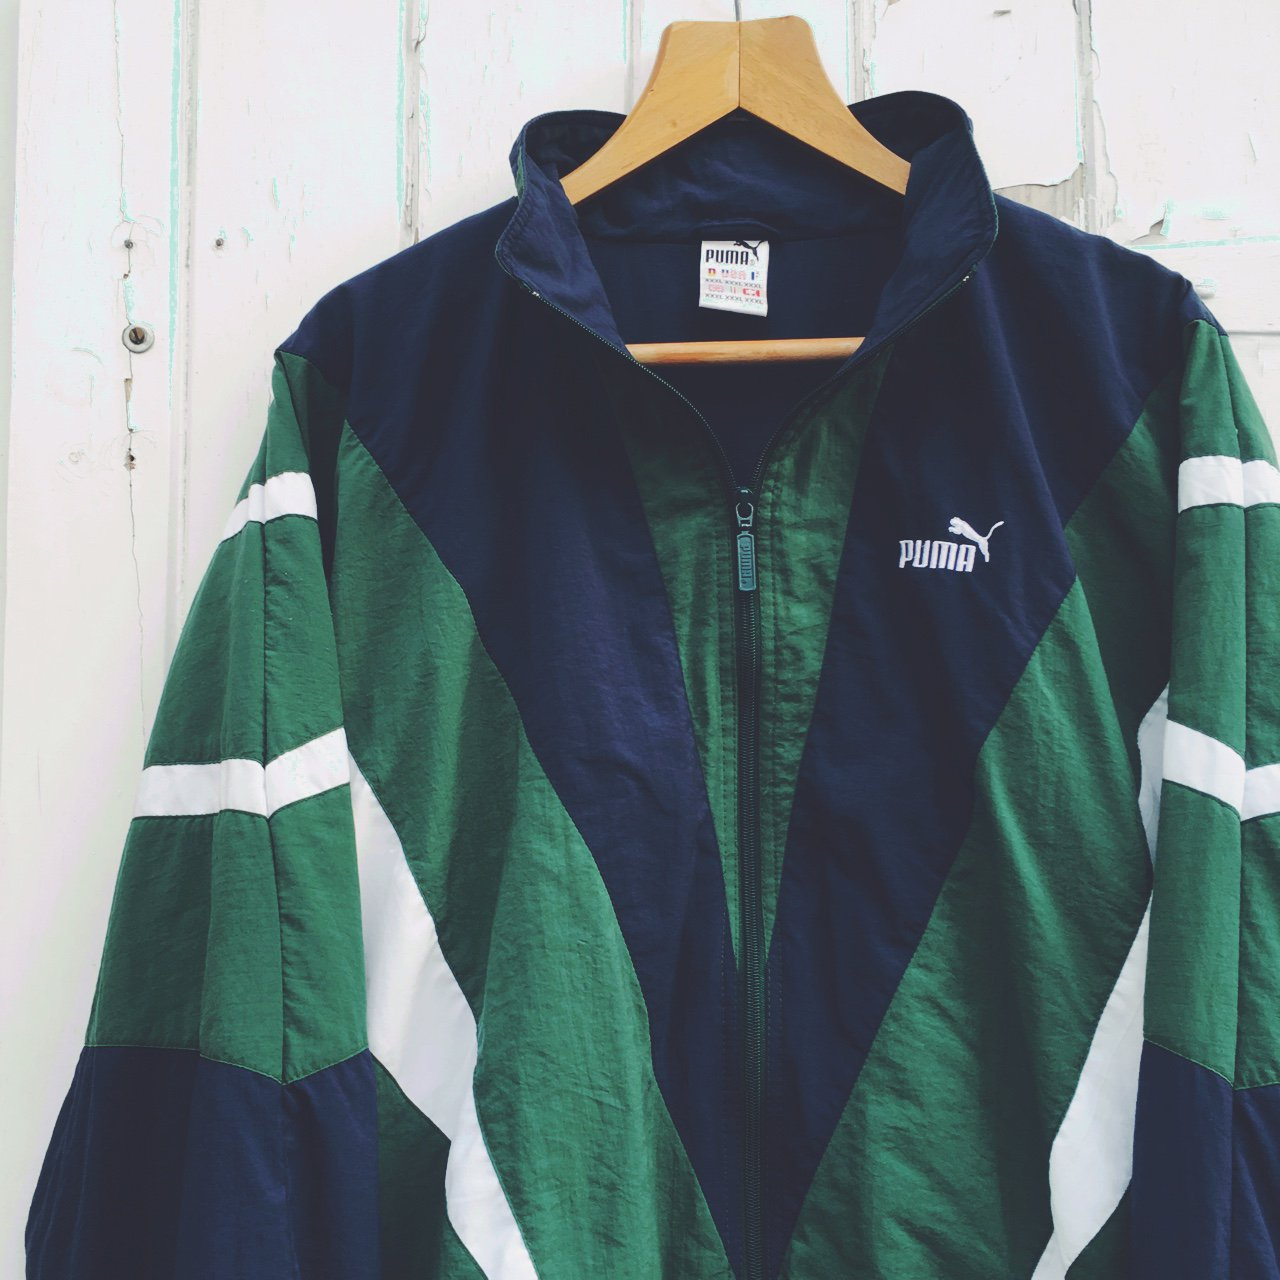 ed360fb610e2 VINTAGE PUMA OVERSIZED STRIPED TRACK JACKET IN FOREST GREEN